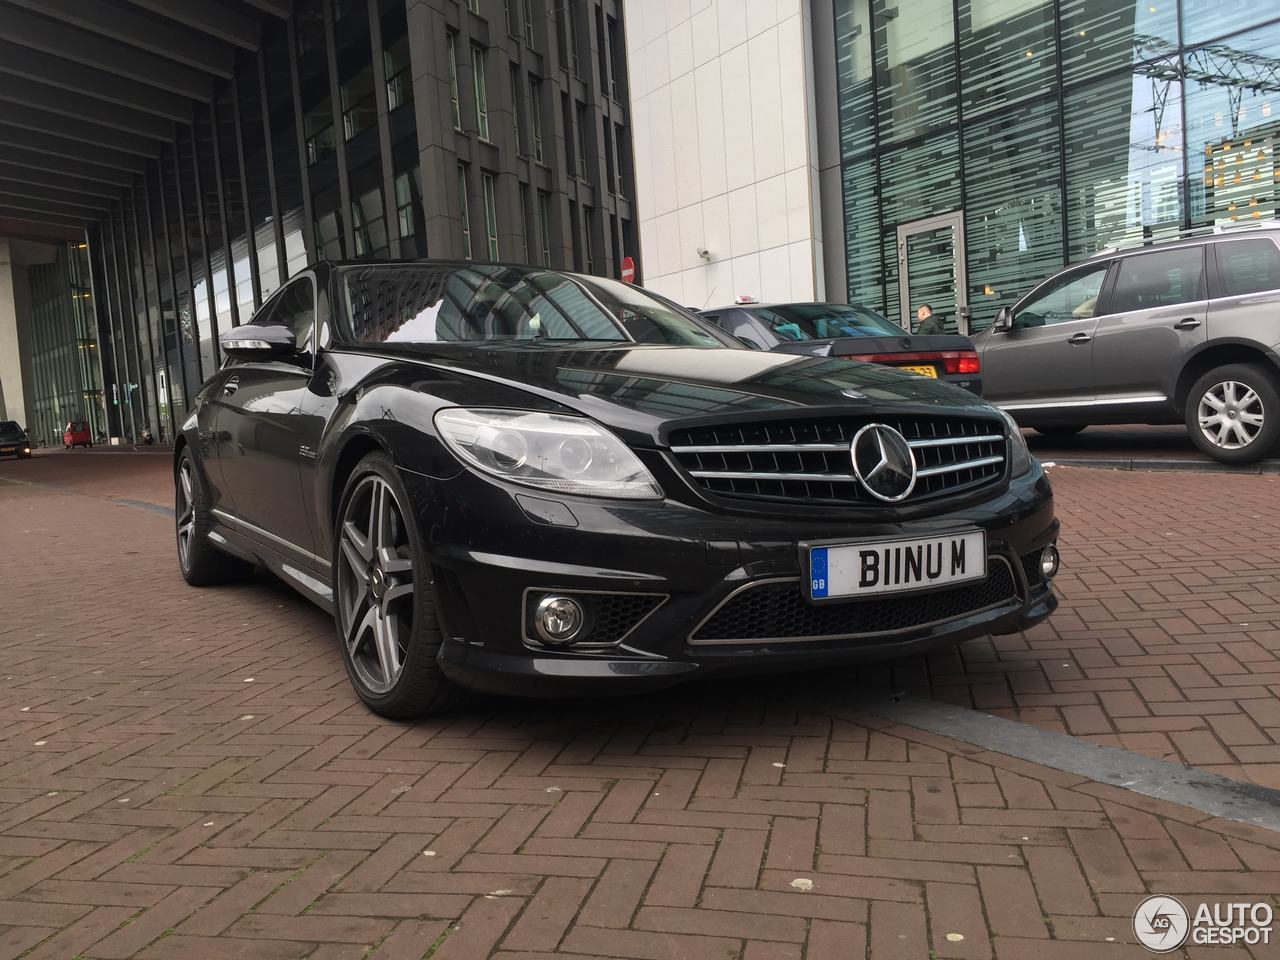 Mercedes benz cl 63 amg c216 29 mai 2016 autogespot for Mercedes benz cl 63 amg price